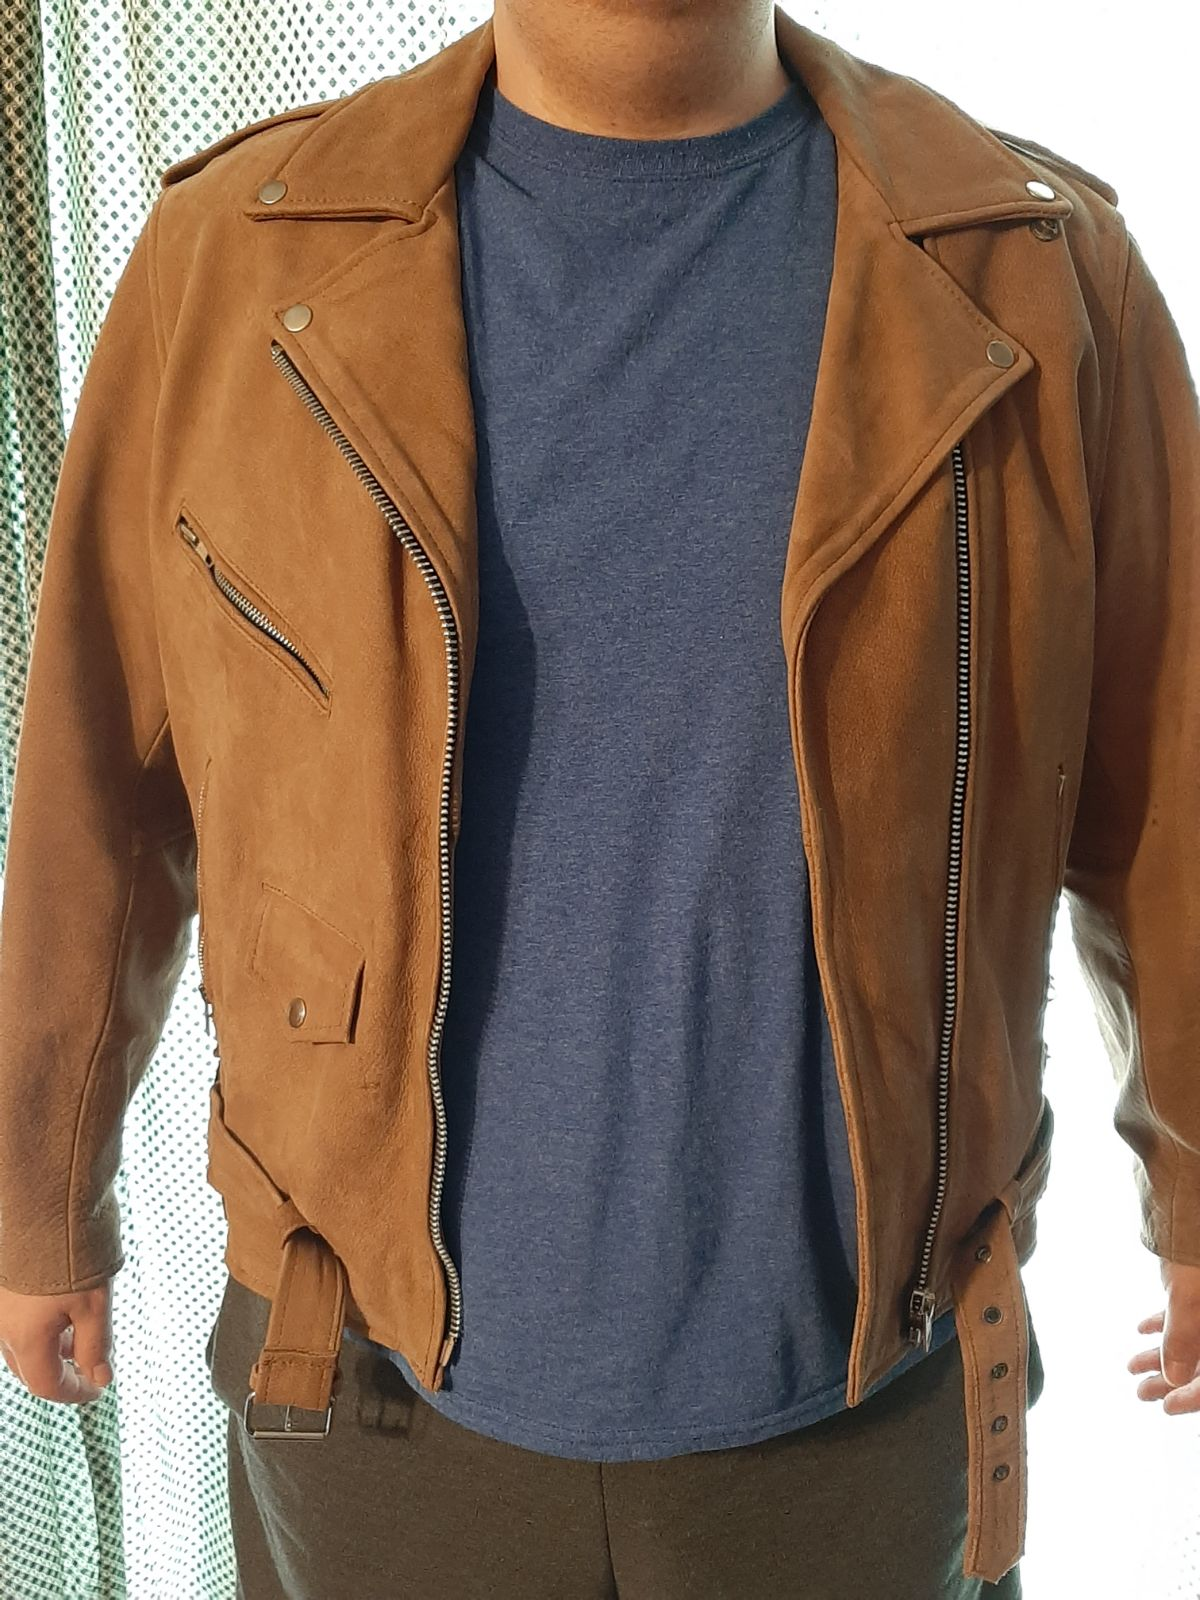 Unisex Brown Leather Motorcycle Jacket w